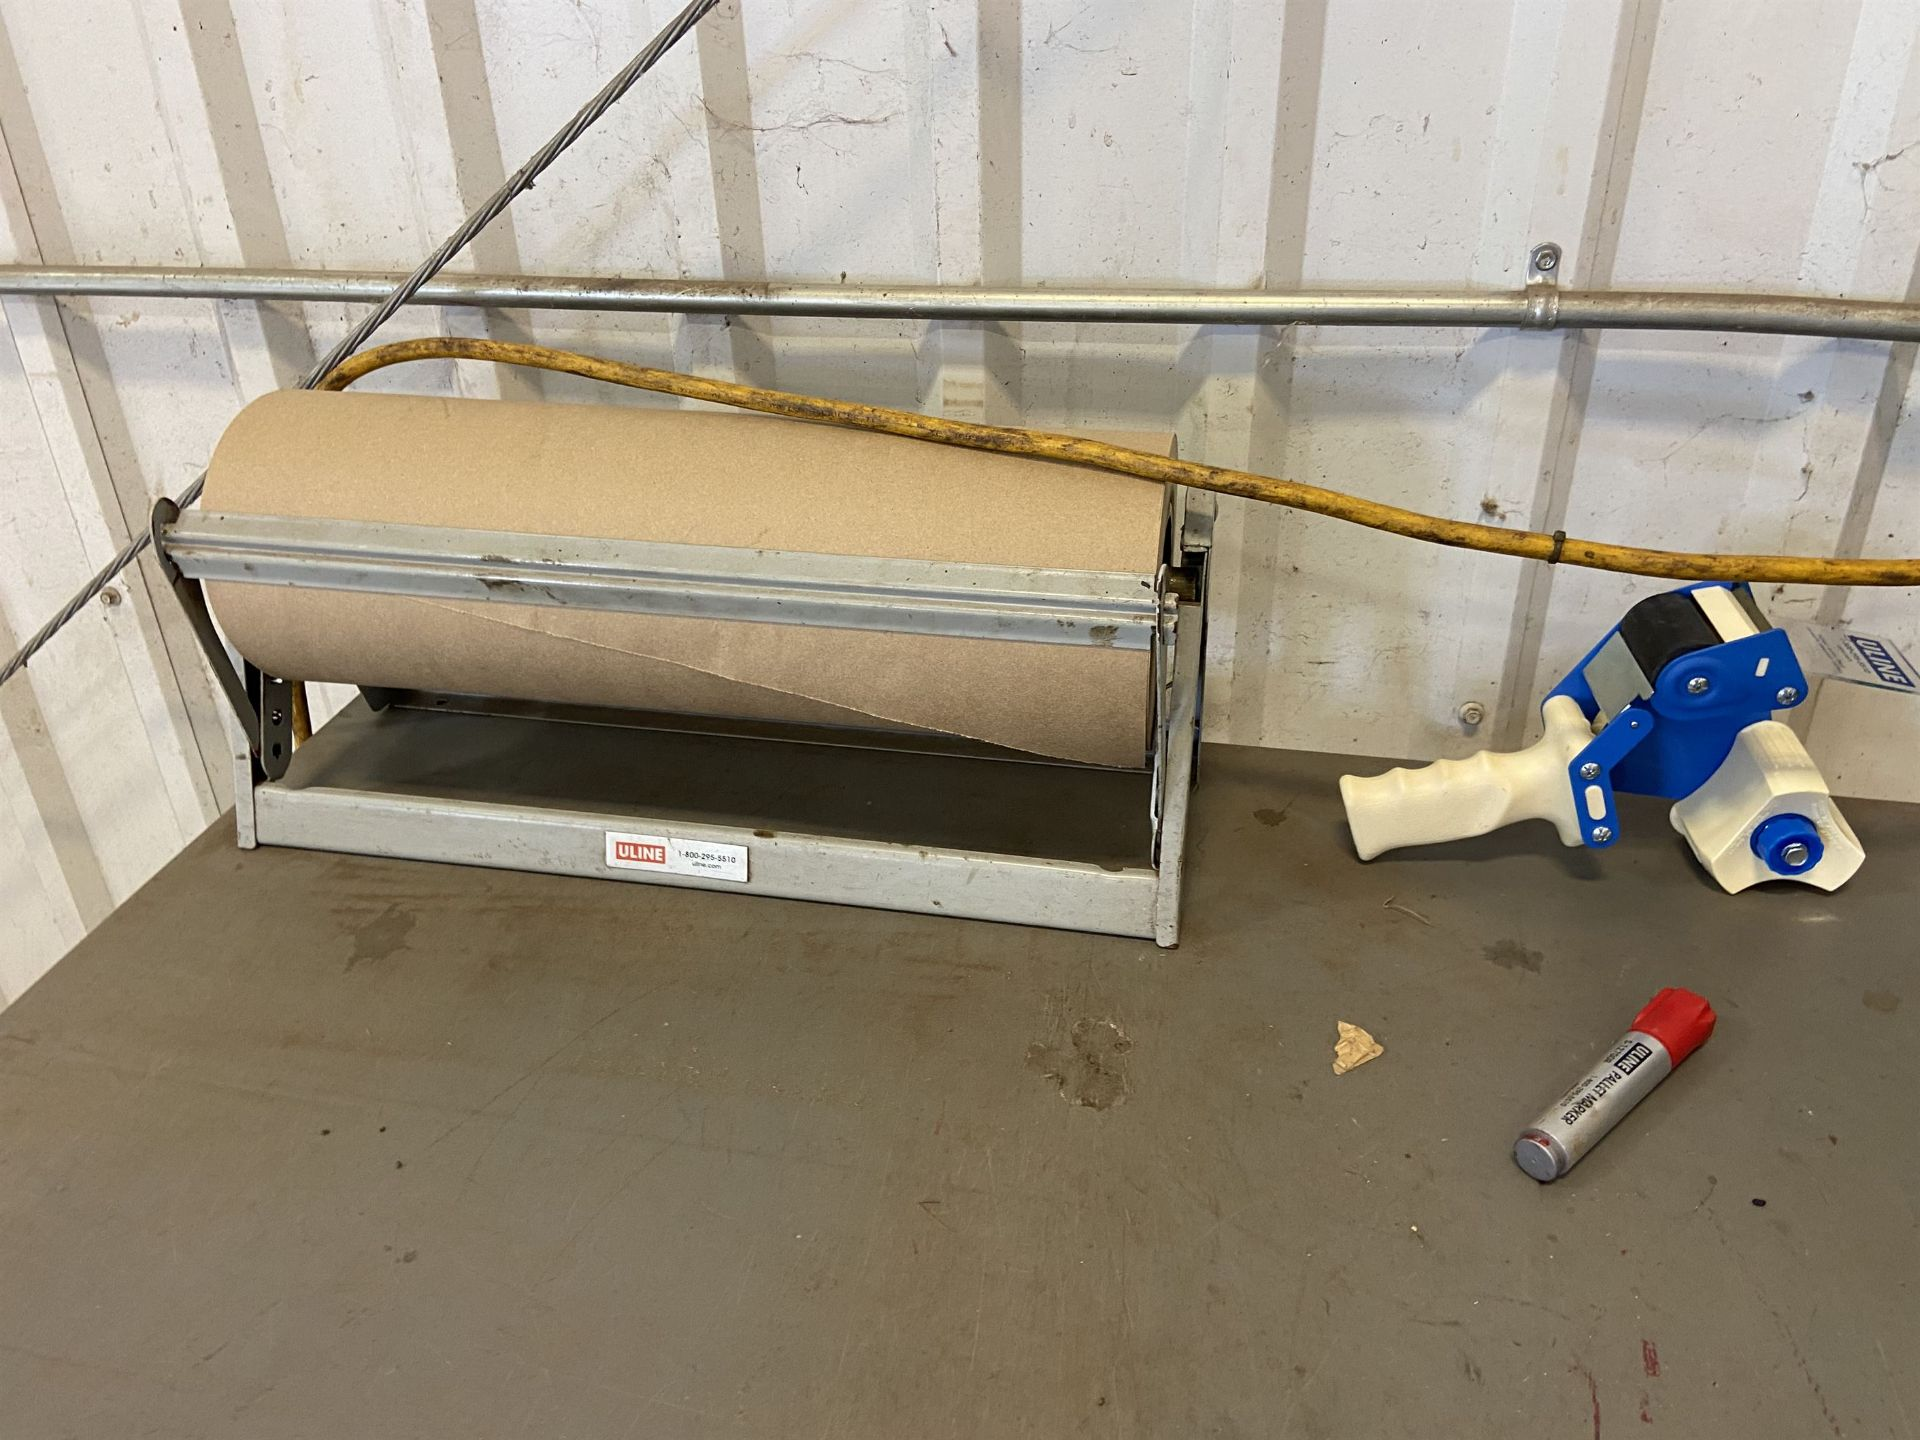 4x4 Scale with Bench Reader and Shipping Area - Image 4 of 5